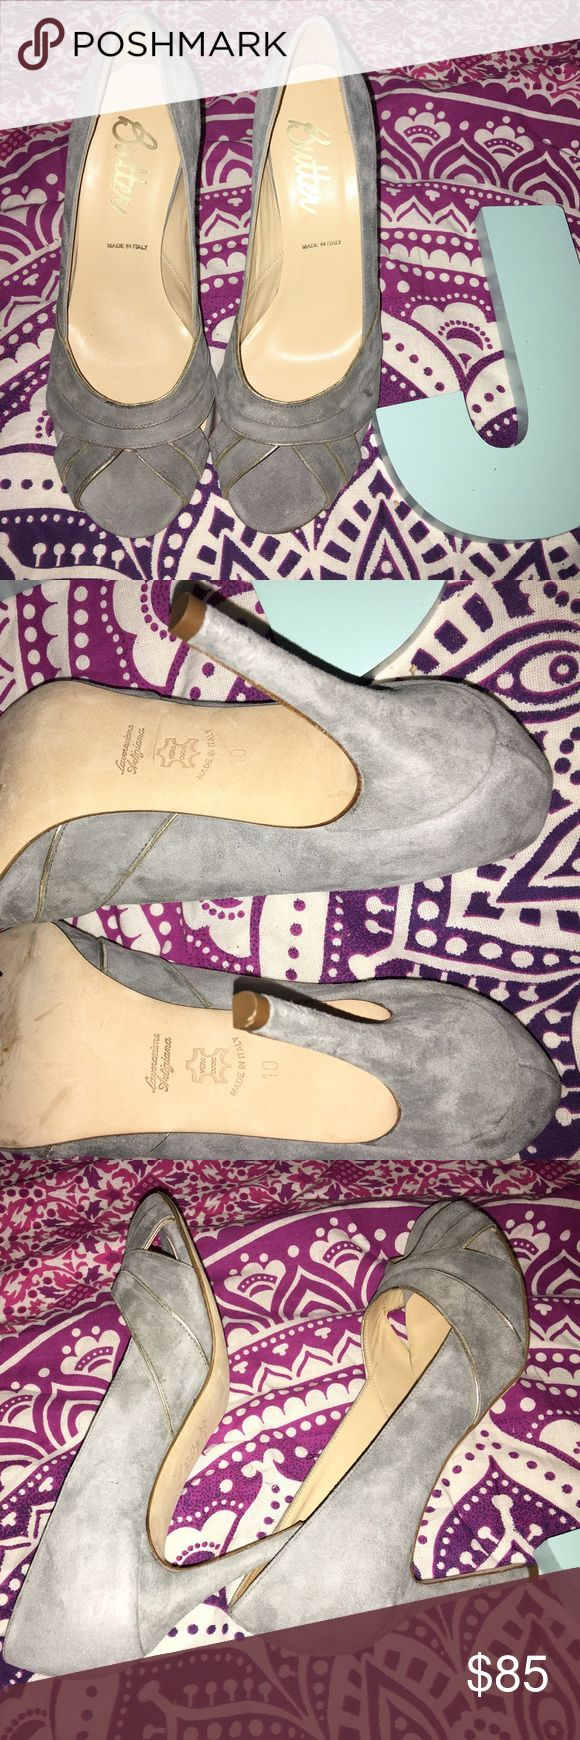 Gray and Gold Suede Butter Heels Made in Italy Butter brand shoes. Made in Italy. Size 10. Gray with gold piping on the front of the heels. Suede material. Soles show very little signs of wear. Like new condition on the interior and exterior. Butter Shoes Shoes Heels